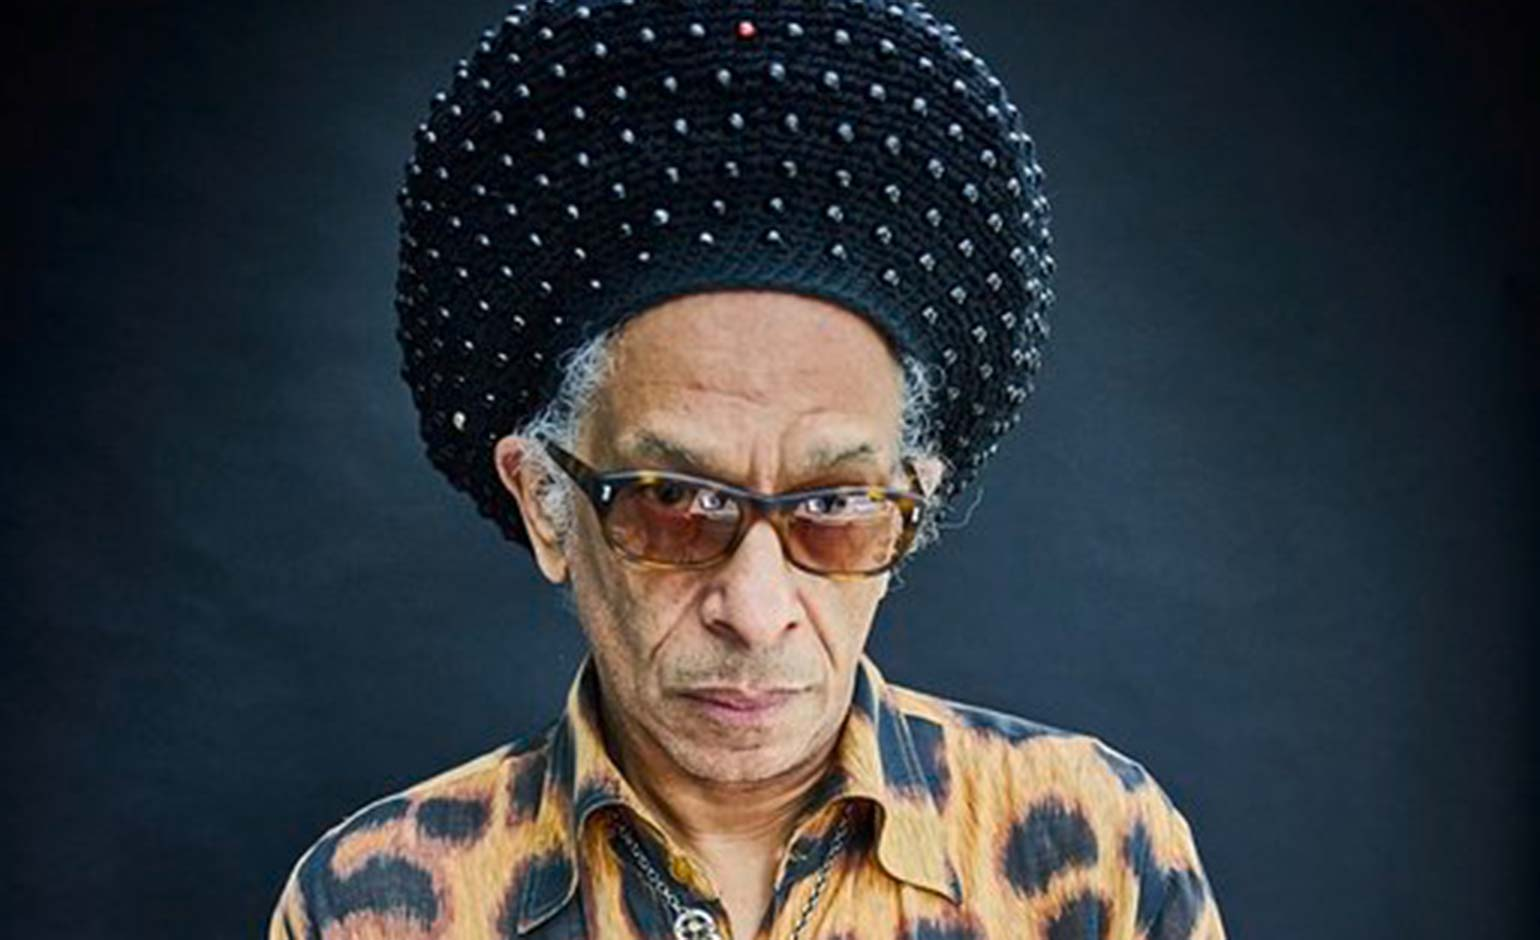 Film director, DJ and musician Don Letts to headline Bath Carnival after-party | Bath Echo